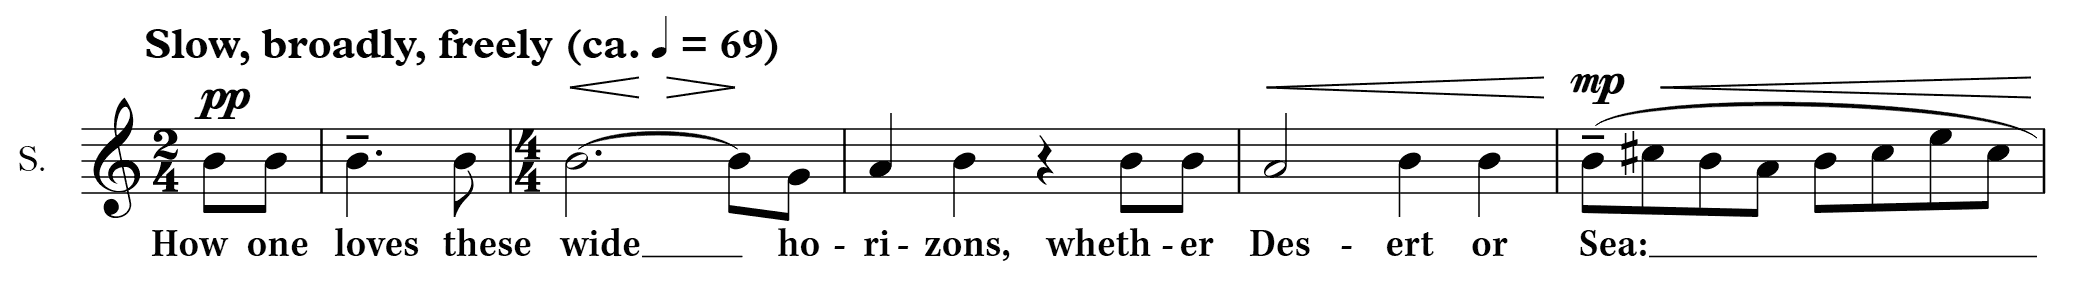 text painting in music